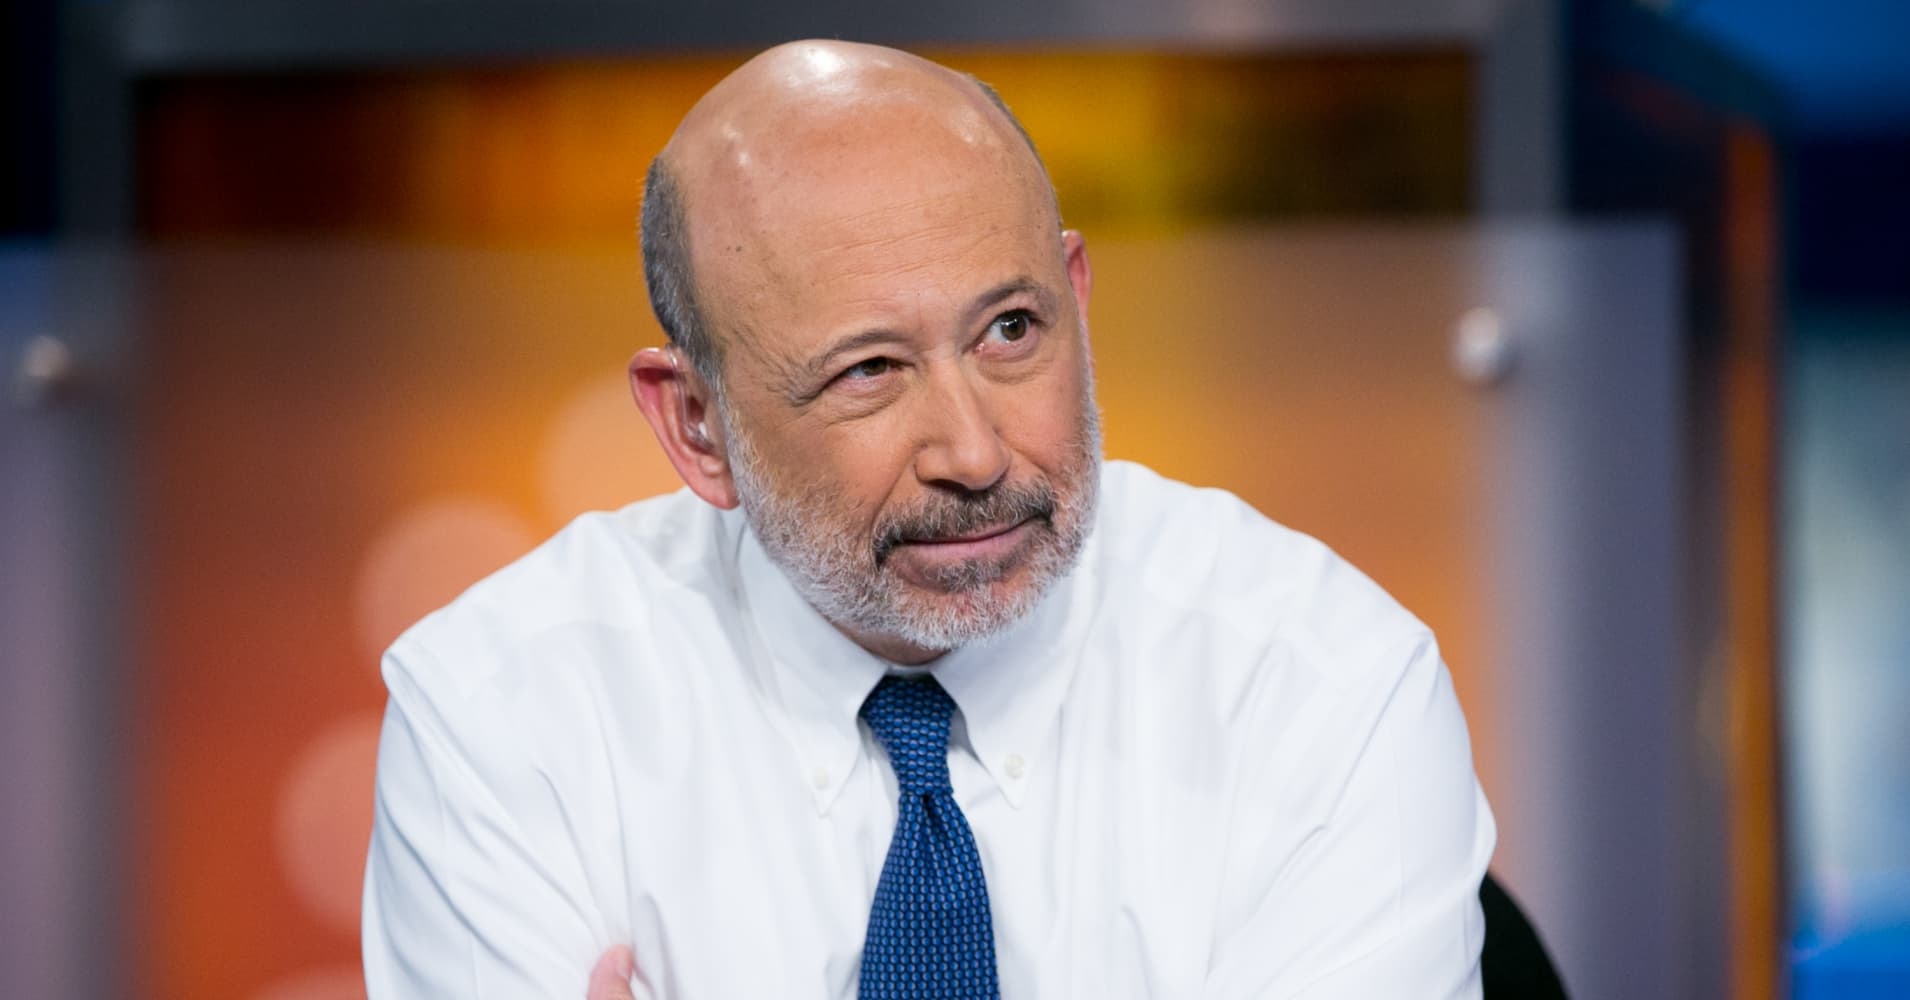 Goldman Sachs earnings blow past expectations; shares rise